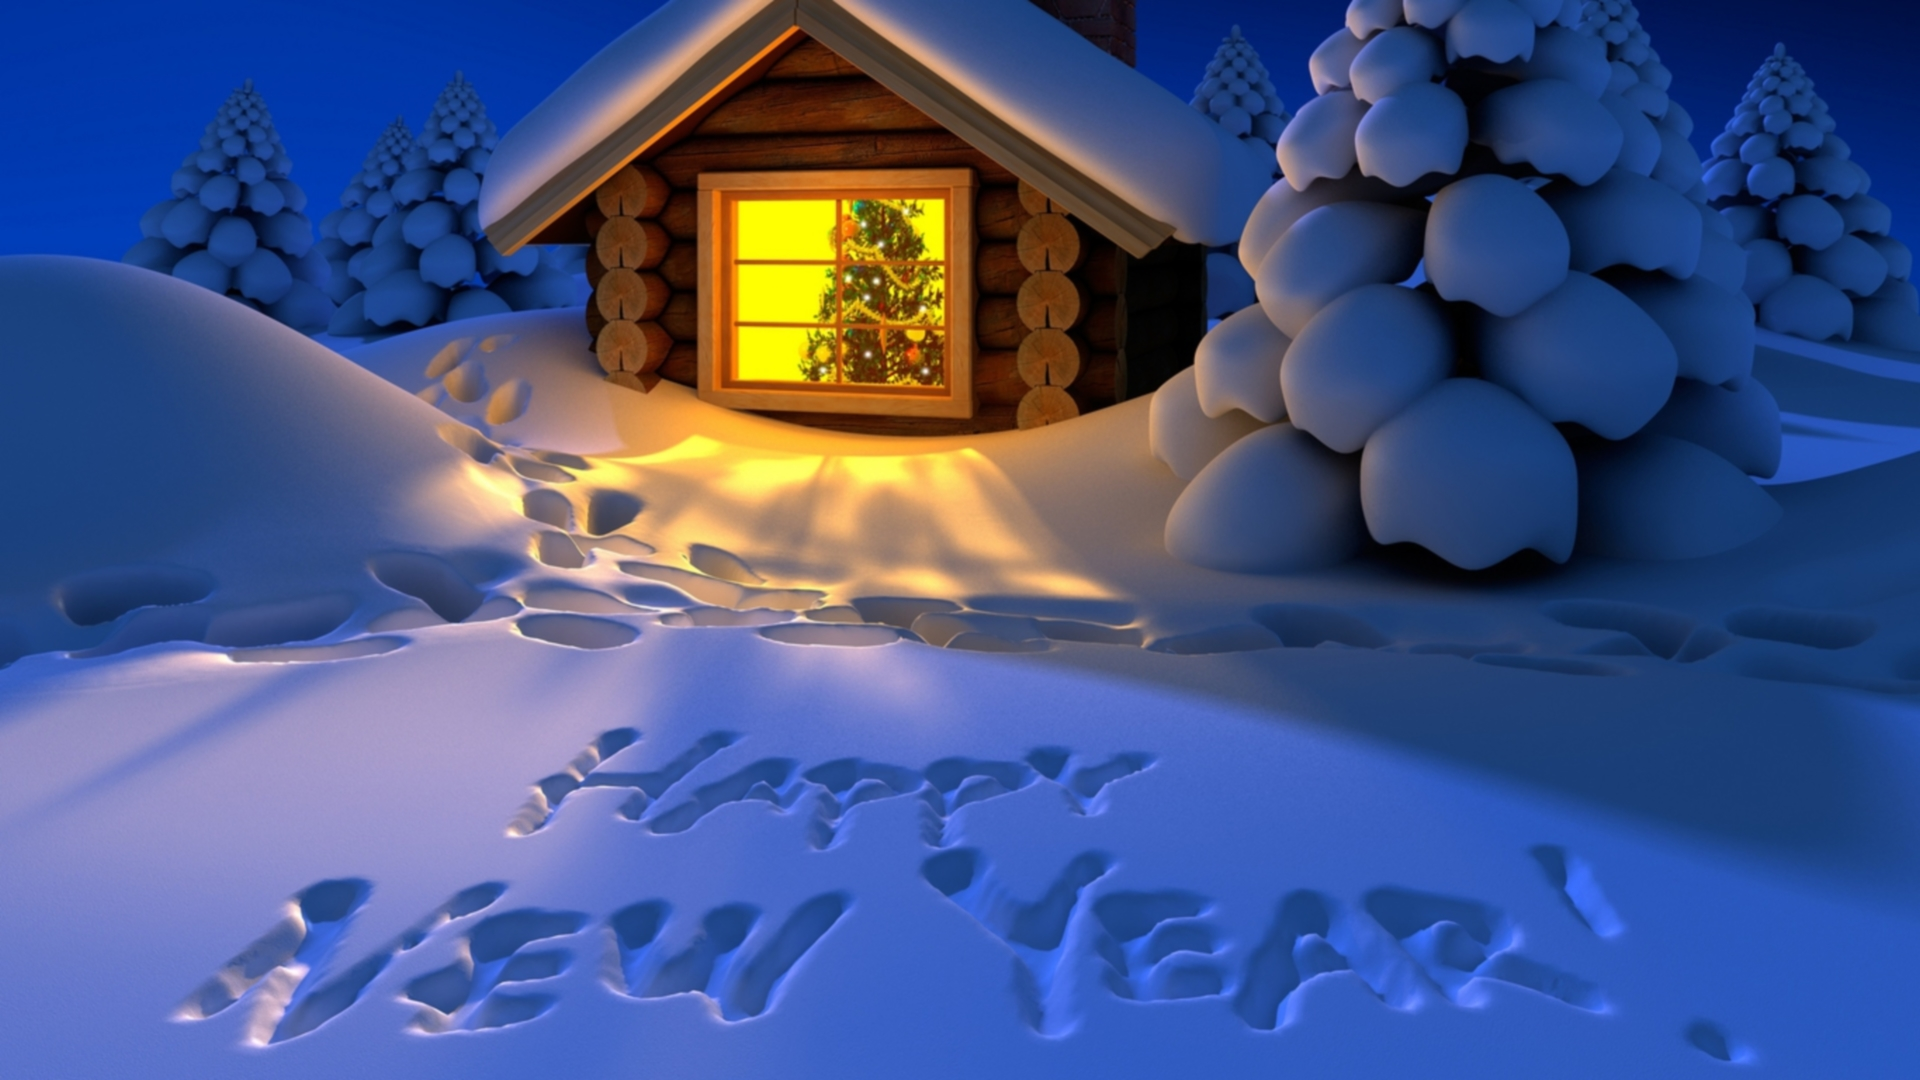 New Year Full HD Wallpaper And Background Image